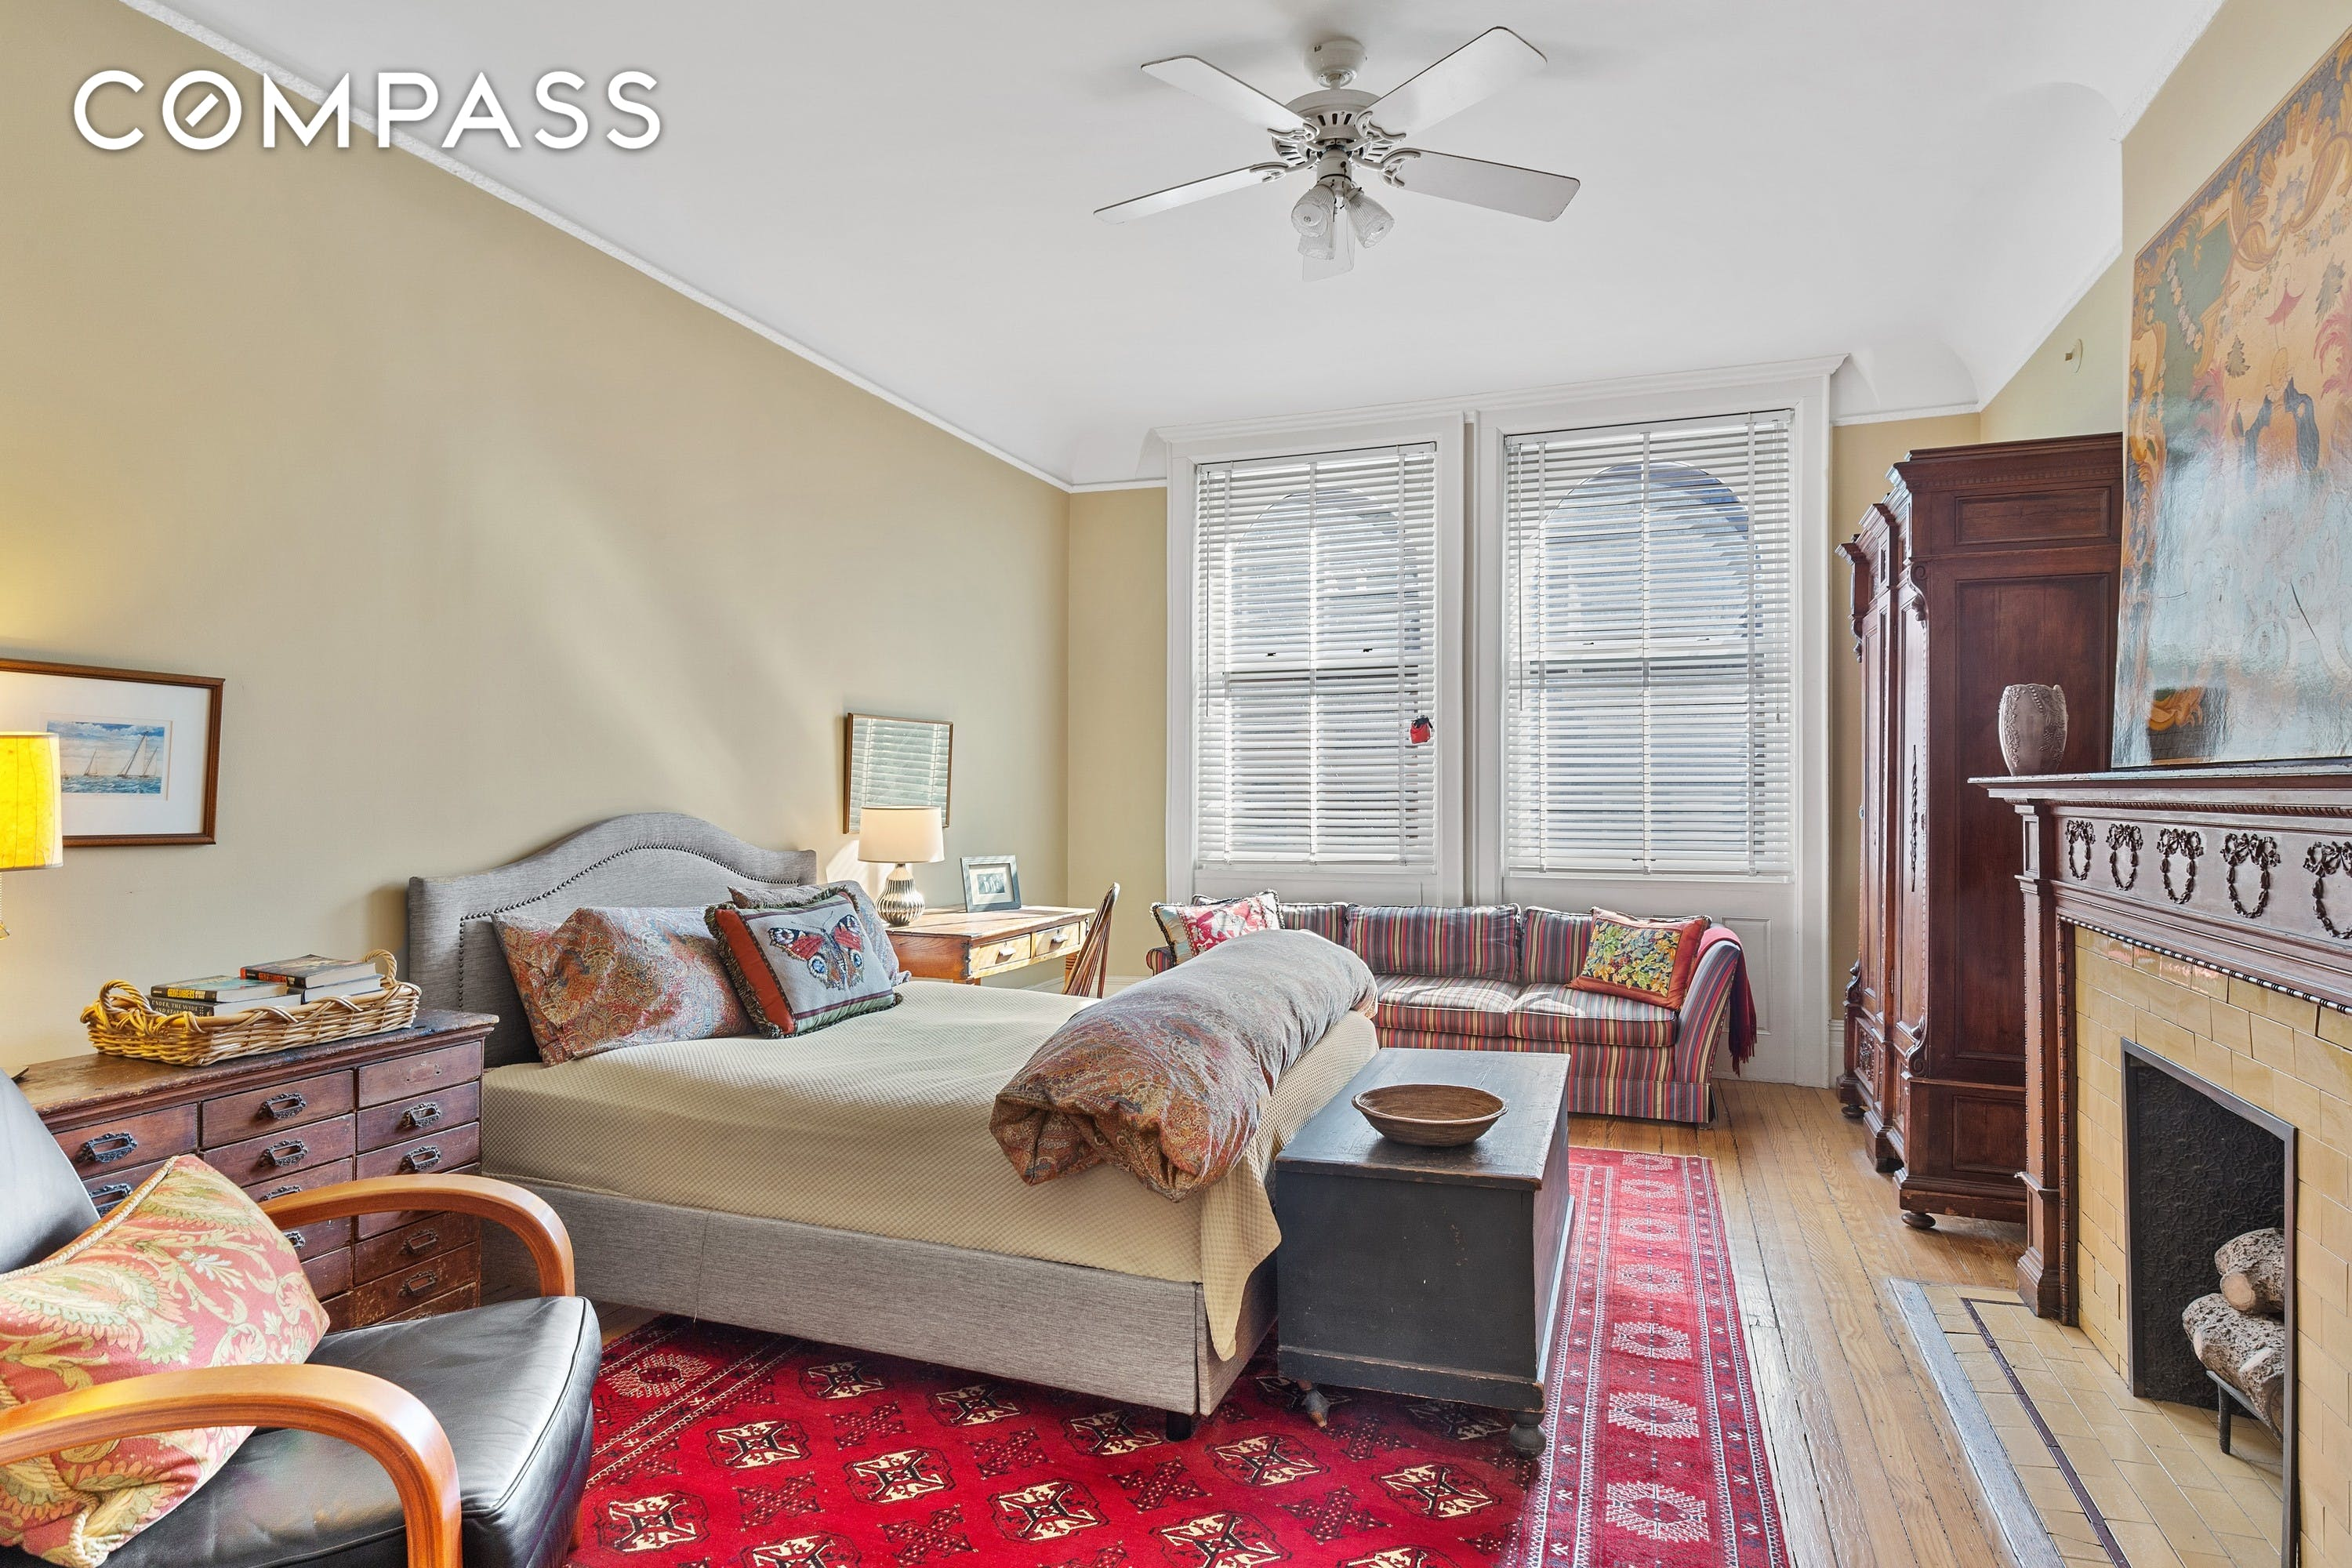 333 West 71st Street Lincoln Square New York NY 10023